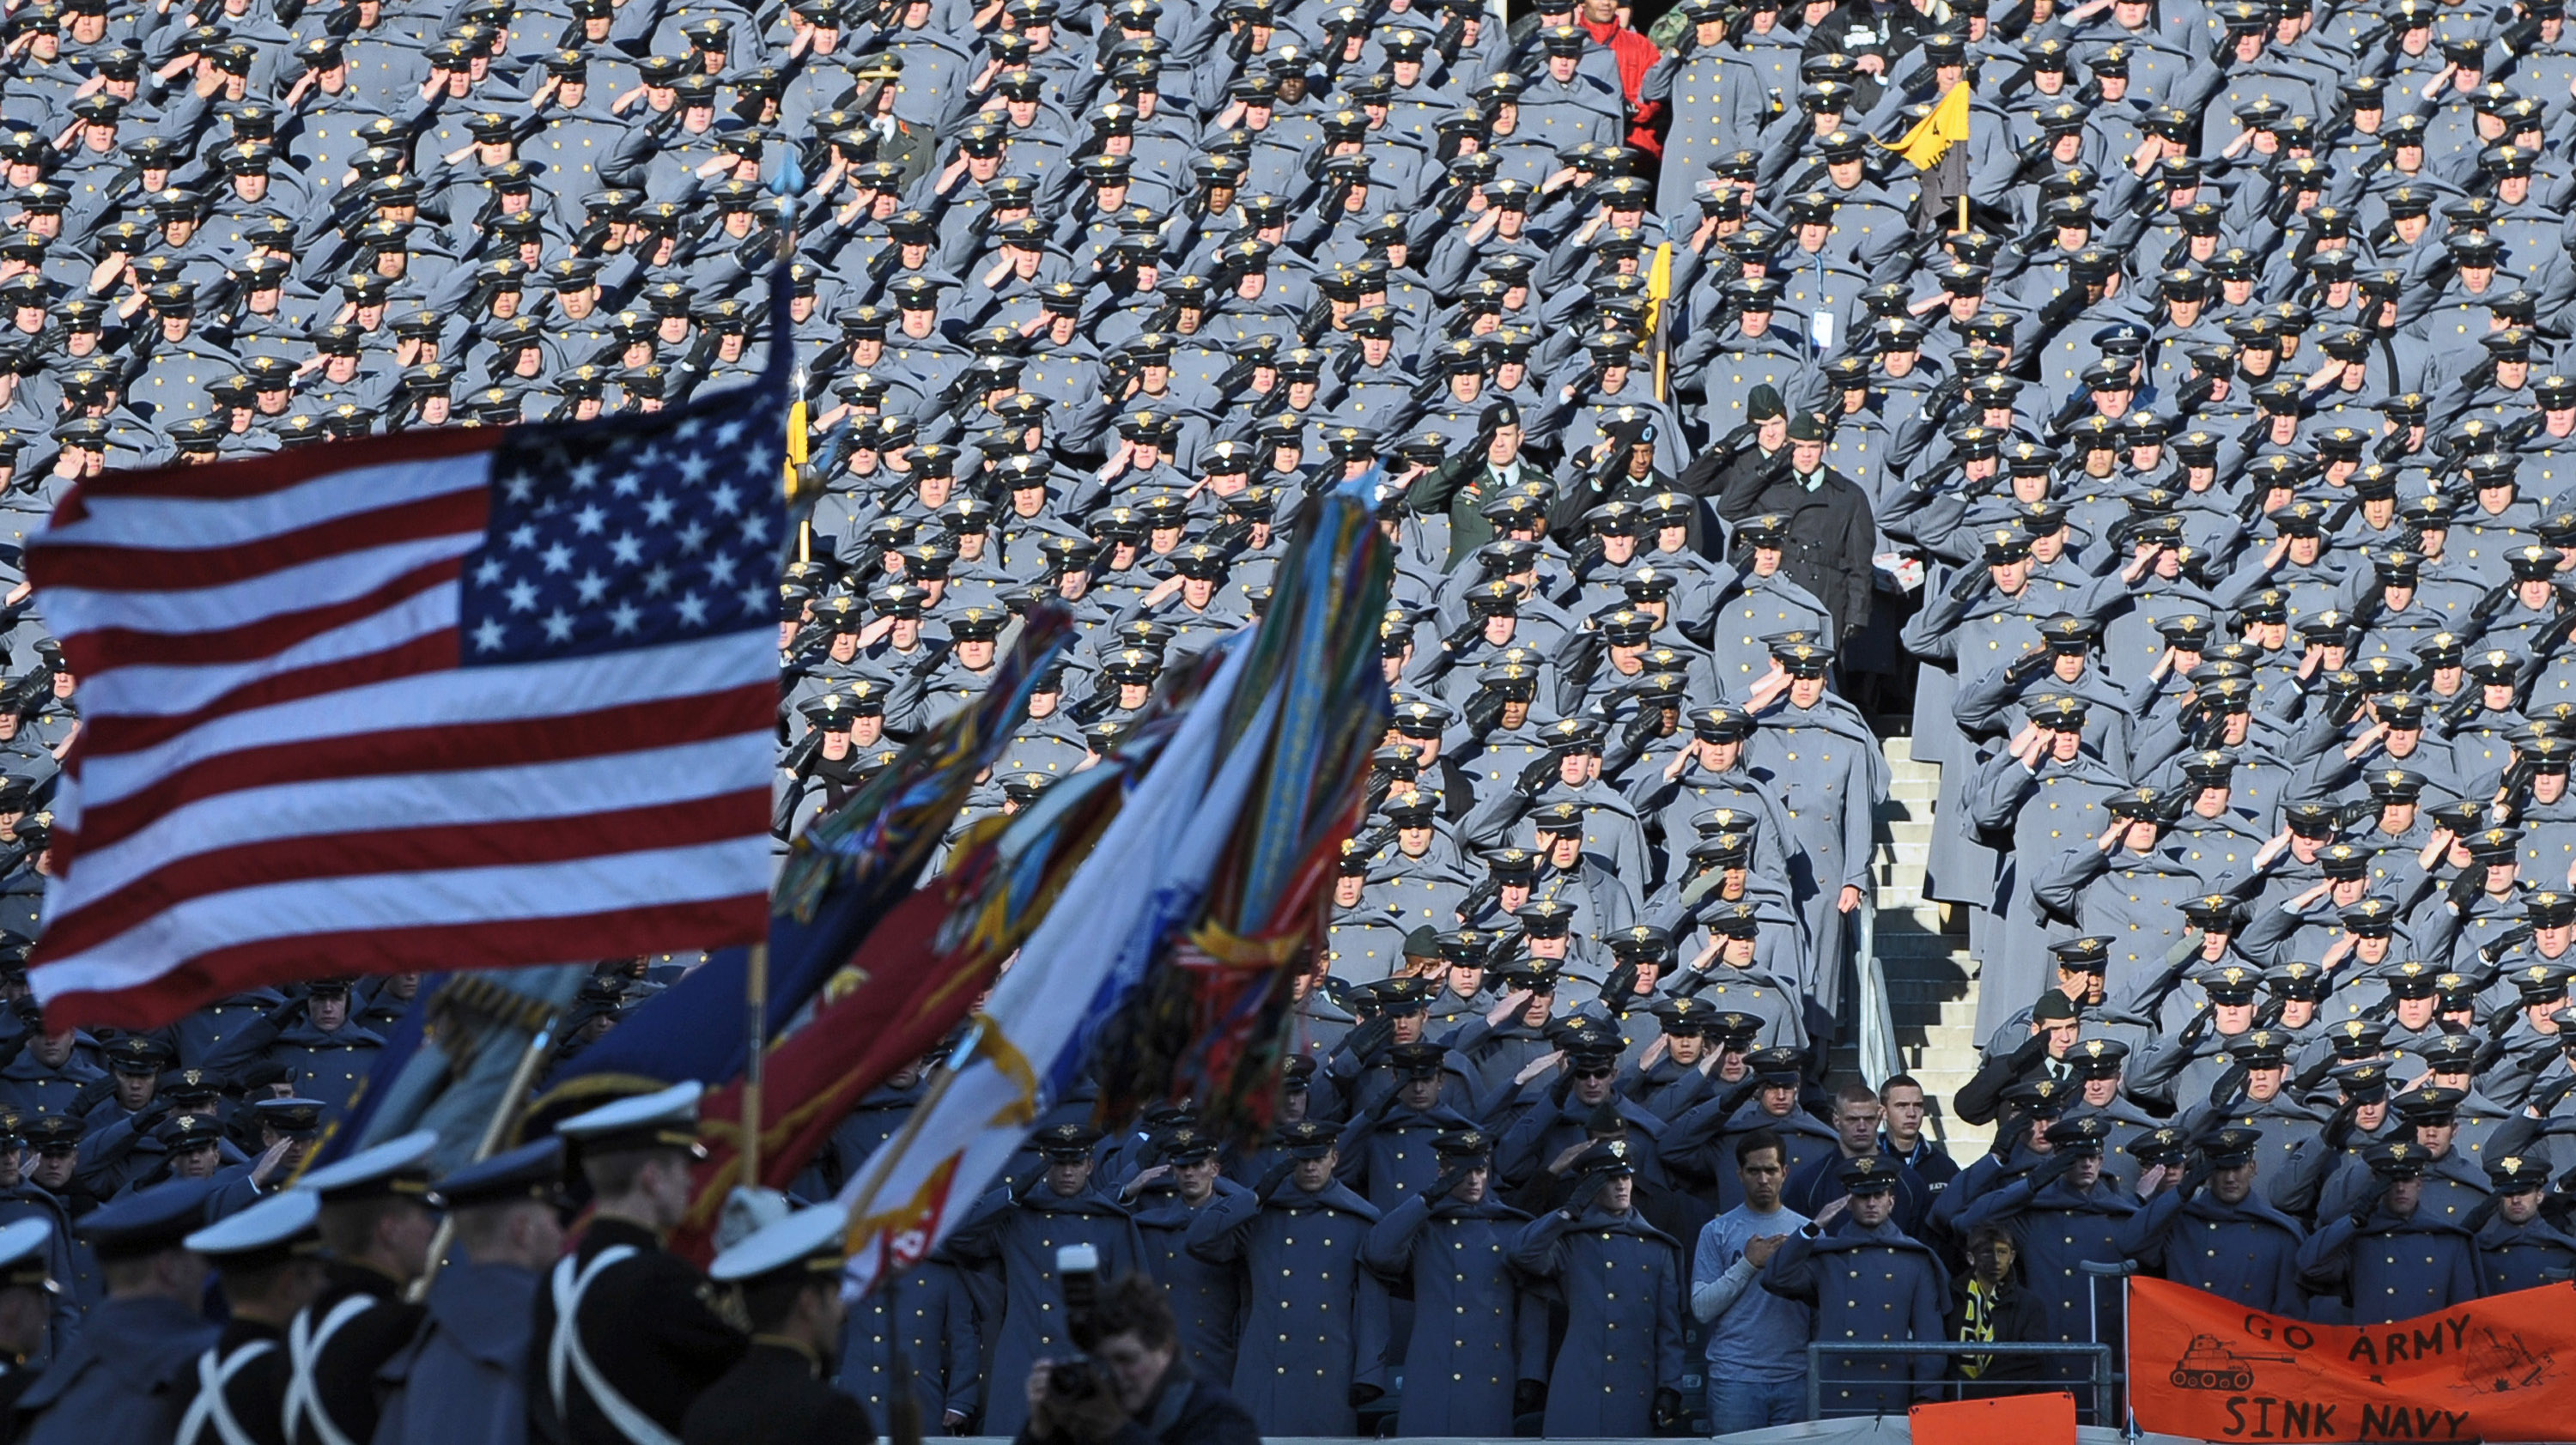 PHILADELPHIA - DECEMBER 12:  Army Cadets salute the American Flag during the National Anthem before the game against the Navy Midshipmen on December 12, 2009 at Lincoln Financial Field in Philadelphia, Pennsylvania. (Photo by Drew Hallowell/Getty Images)